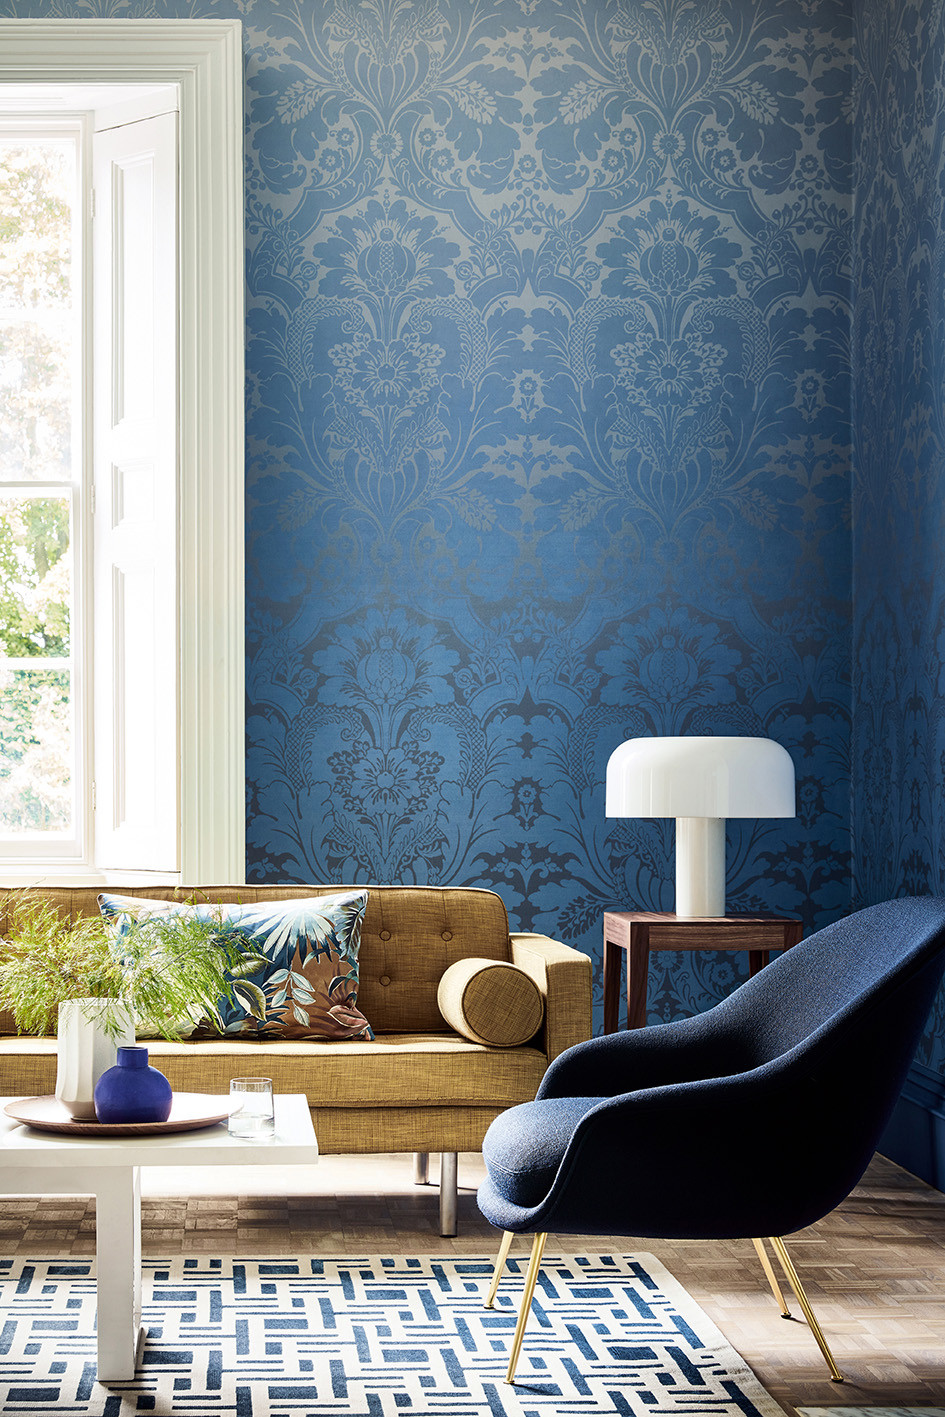 Little Greene LONDON WALLPAPERS V St James's Park - Suede Fade living room with blue wallpaper and white lamp, geometric rug